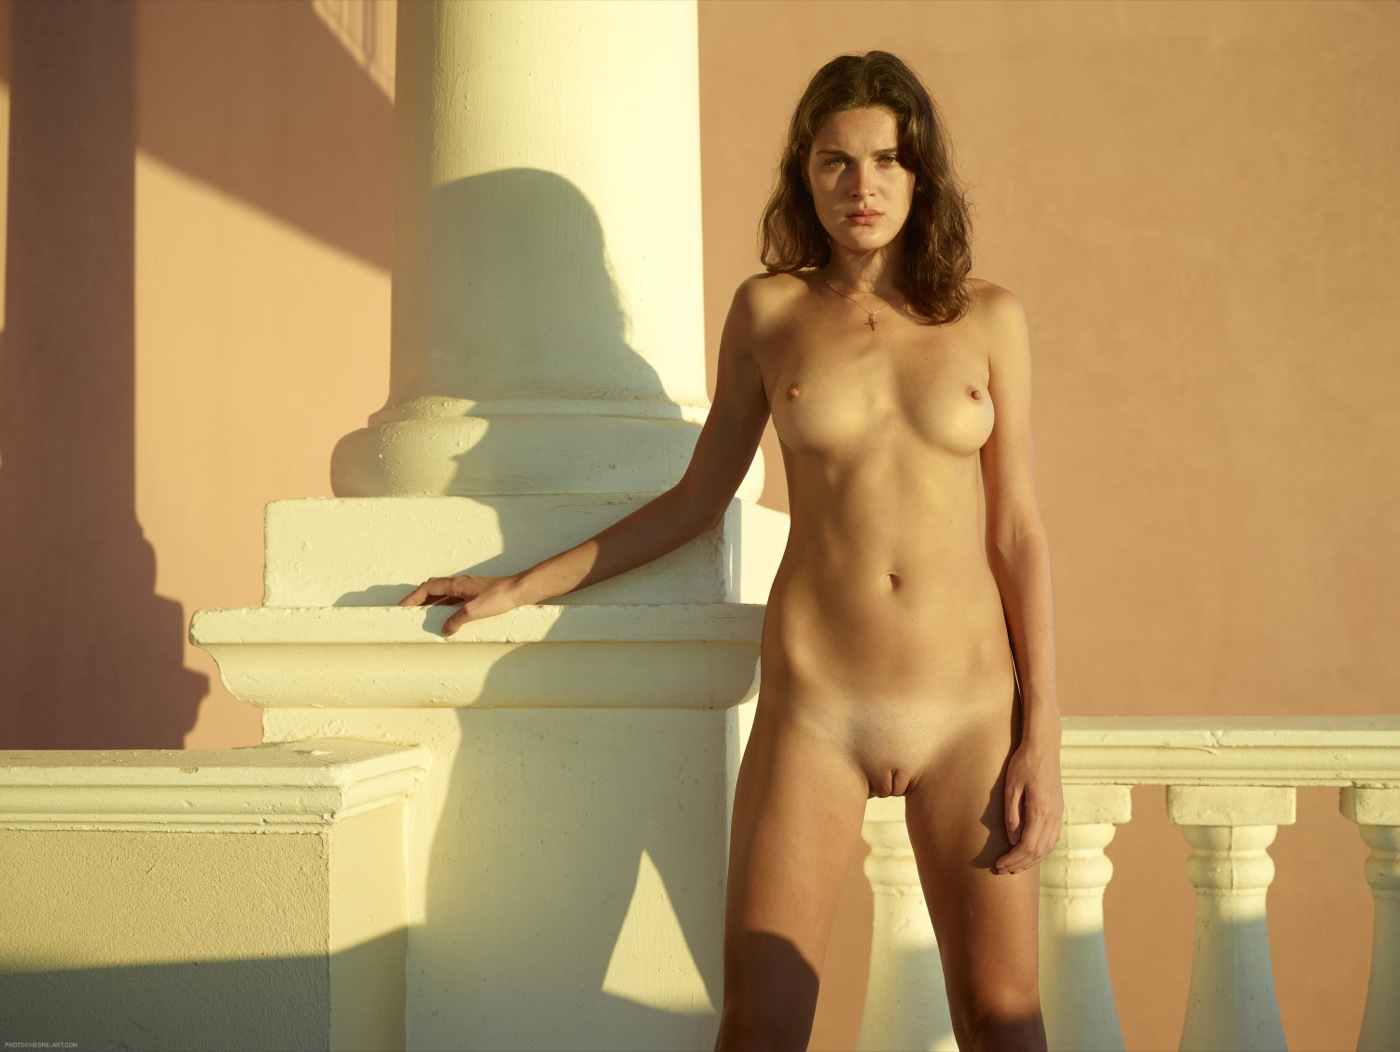 Topless Pictures Of Women